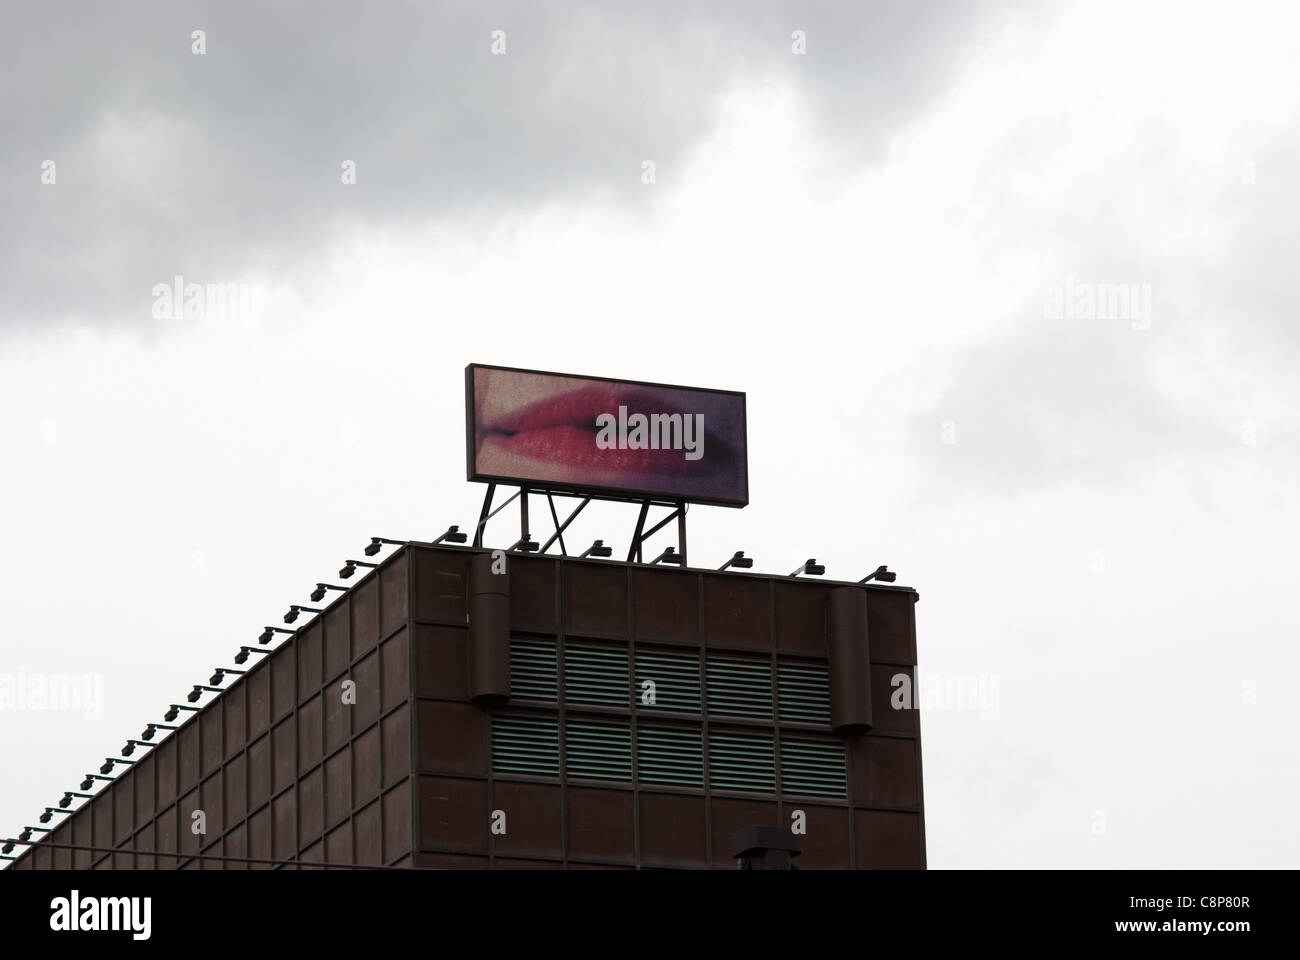 Funny billboard ads on top of building showing woman lips - Stock Image